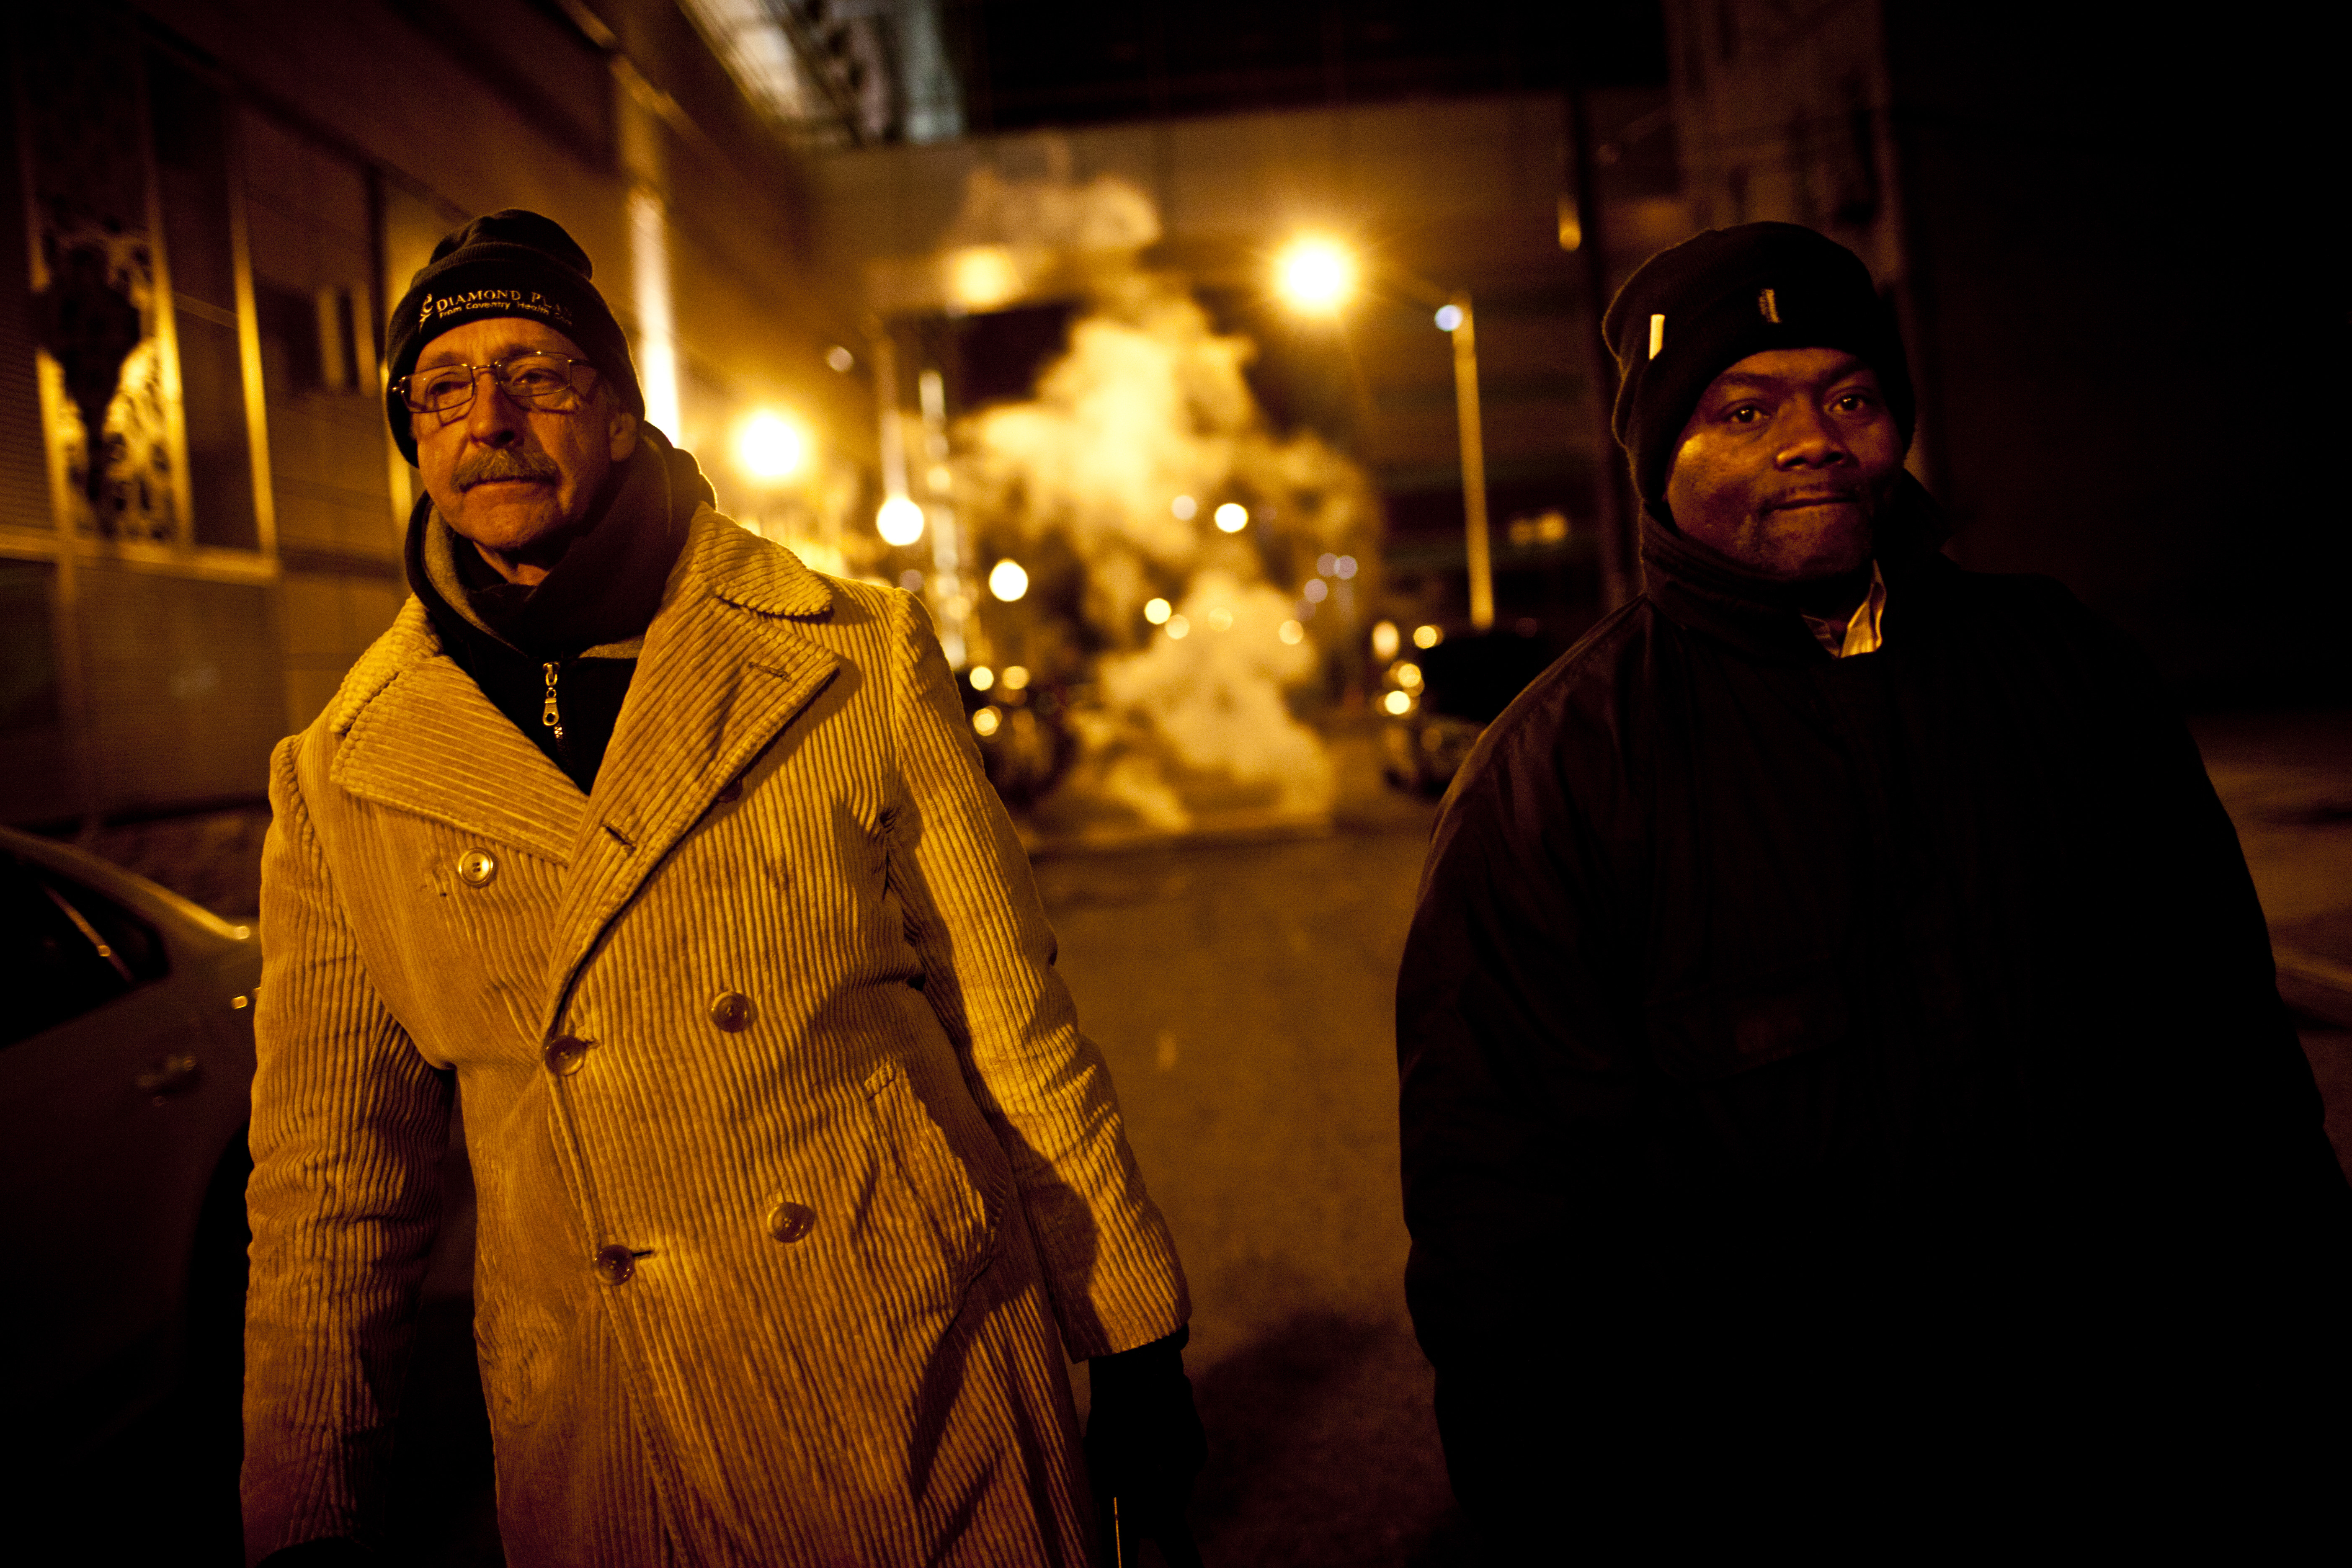 Paul Behler, 59, and Tony Simmons, 51, leave a shelter where residents have to be out at 5 a.m. HCH also cultivates potential advocates still struggling to get back on their feet, like Behler and Simmons.